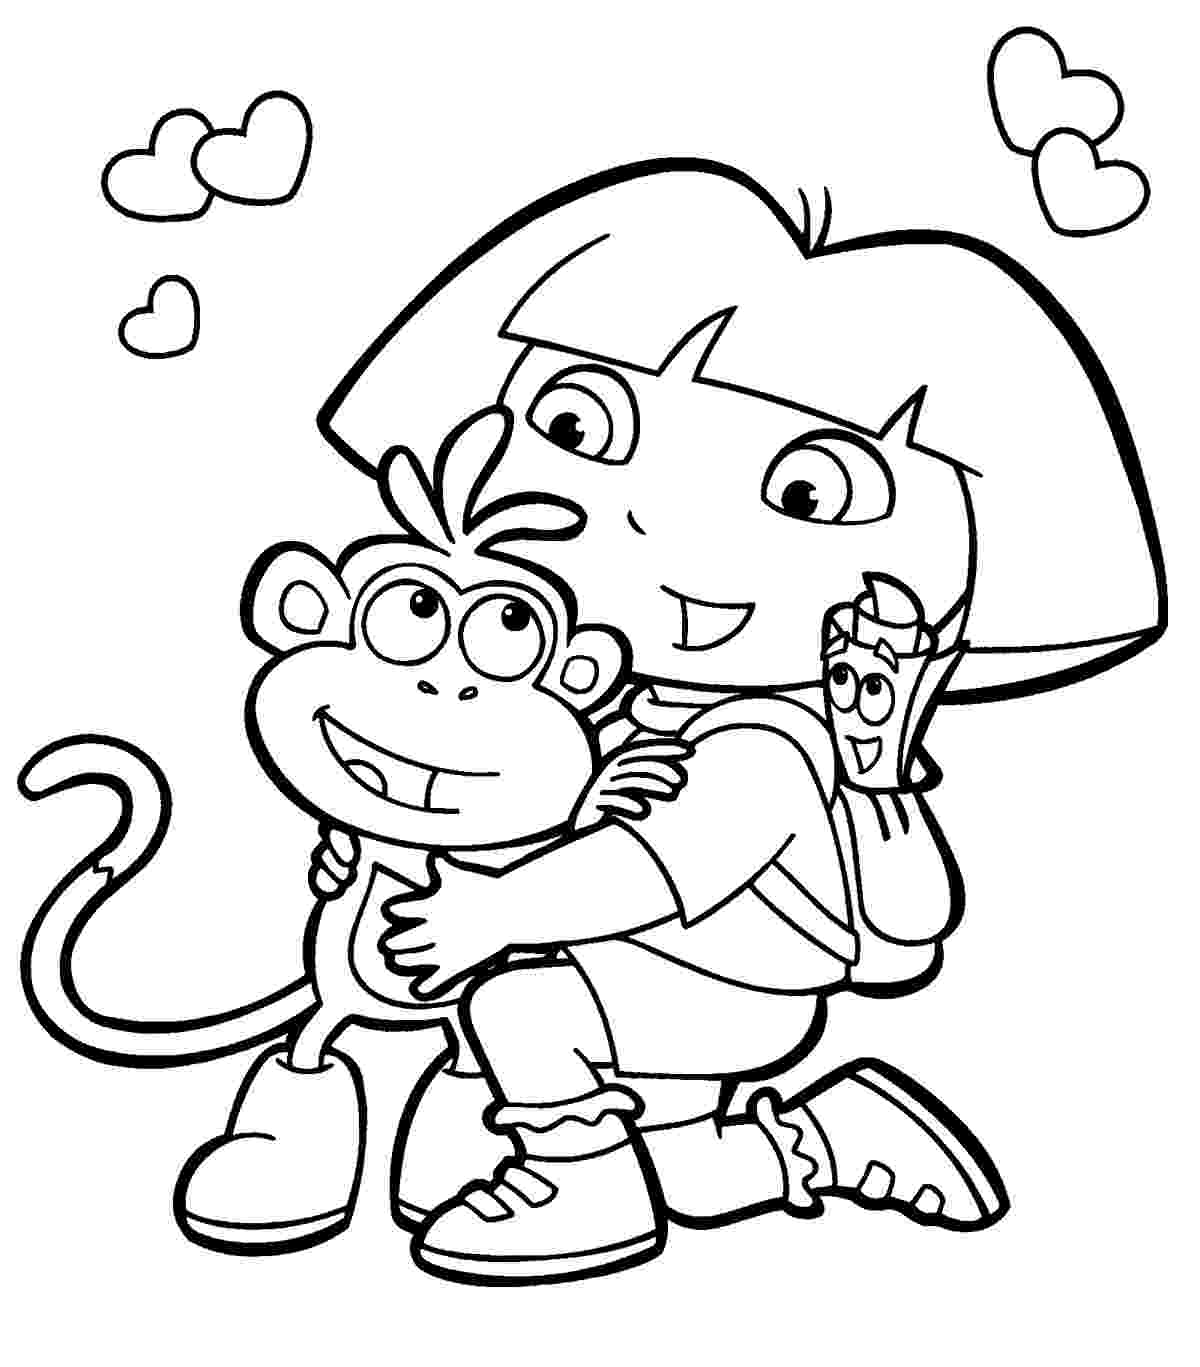 pictures of dora to color dora coloring pages free printables momjunction pictures of color to dora